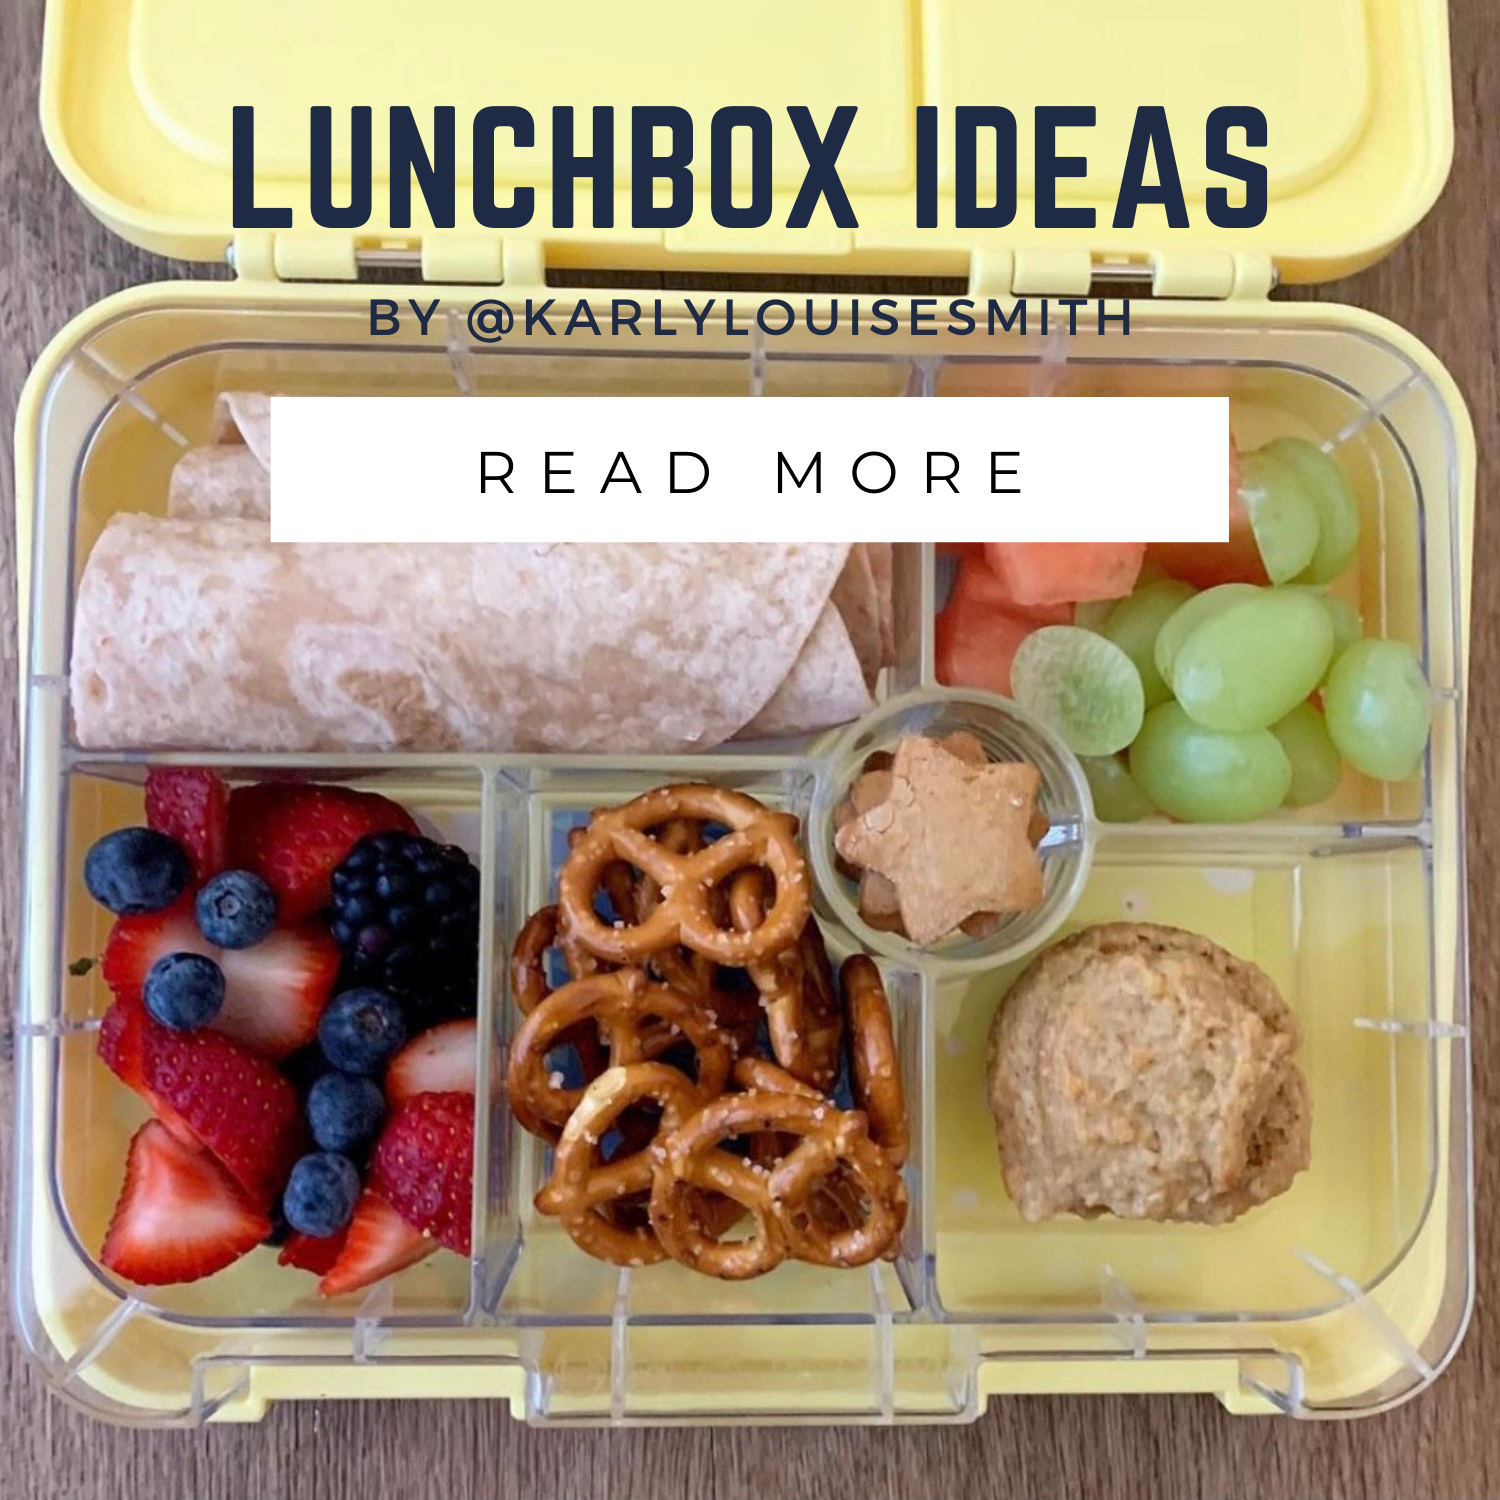 Lunchbox_ideas_mobile.png